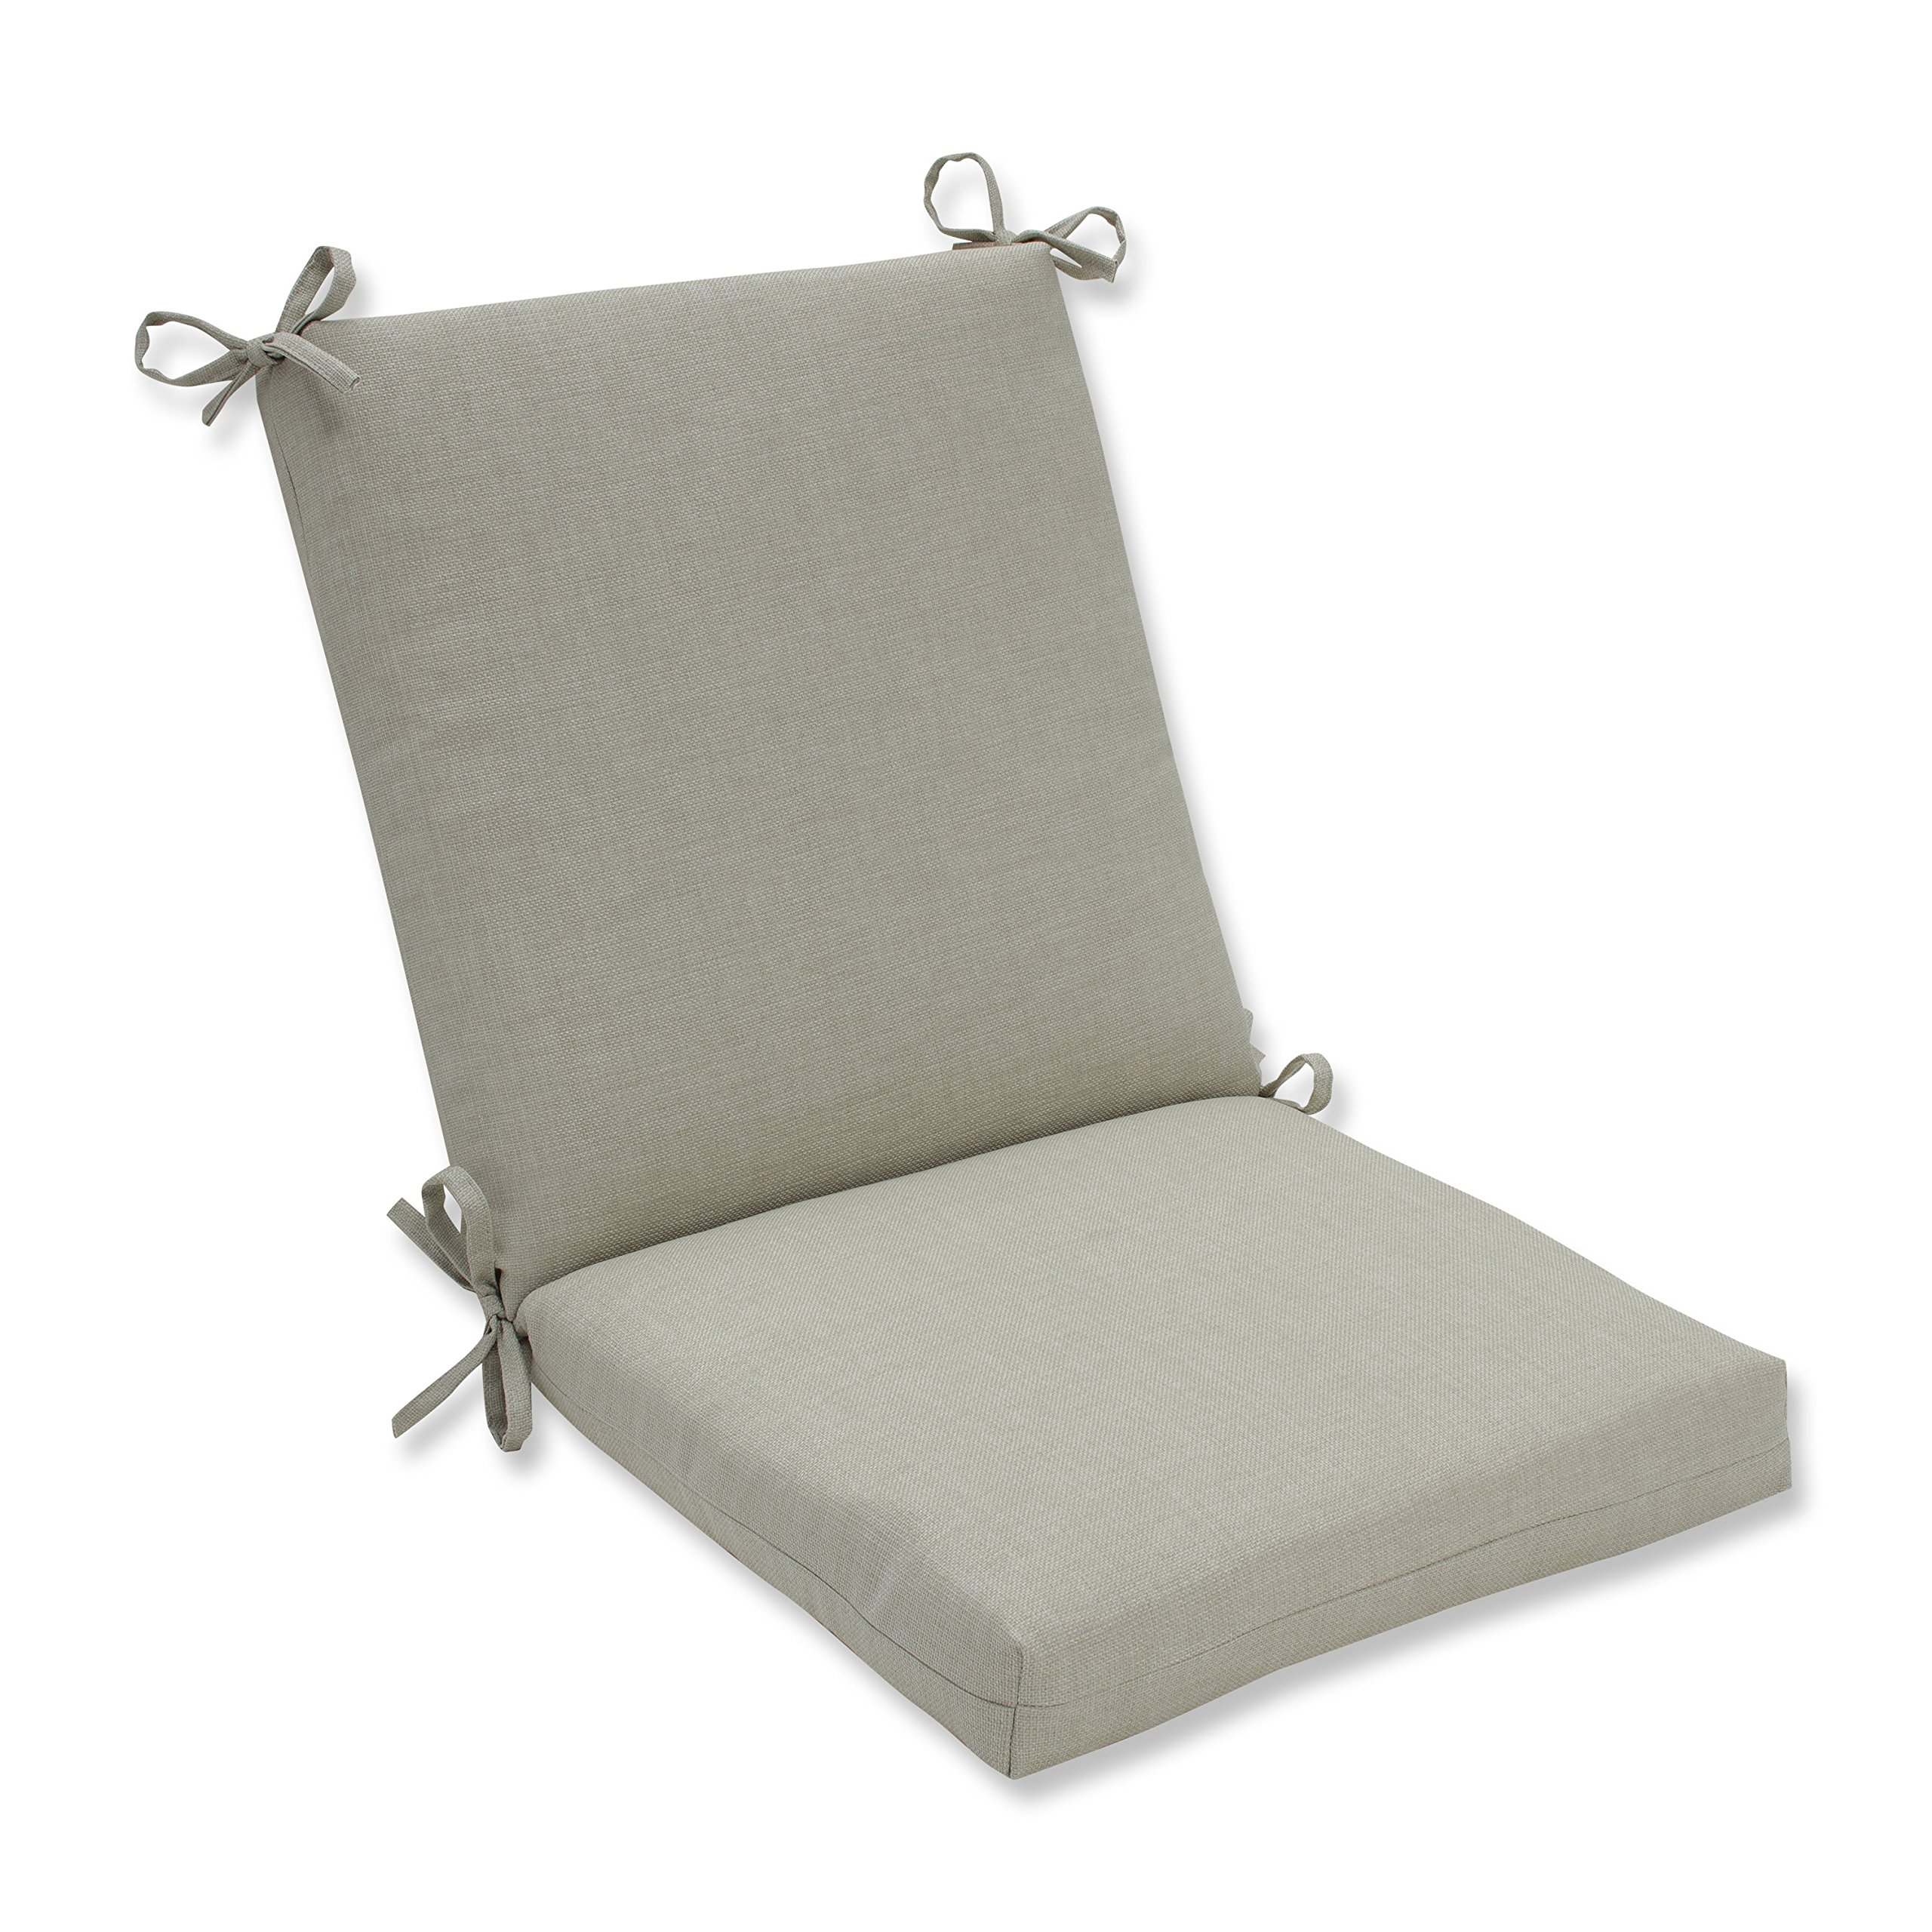 Pillow Perfect Outdoor/Indoor Rave Driftwood Squared Corners Chair Cushion